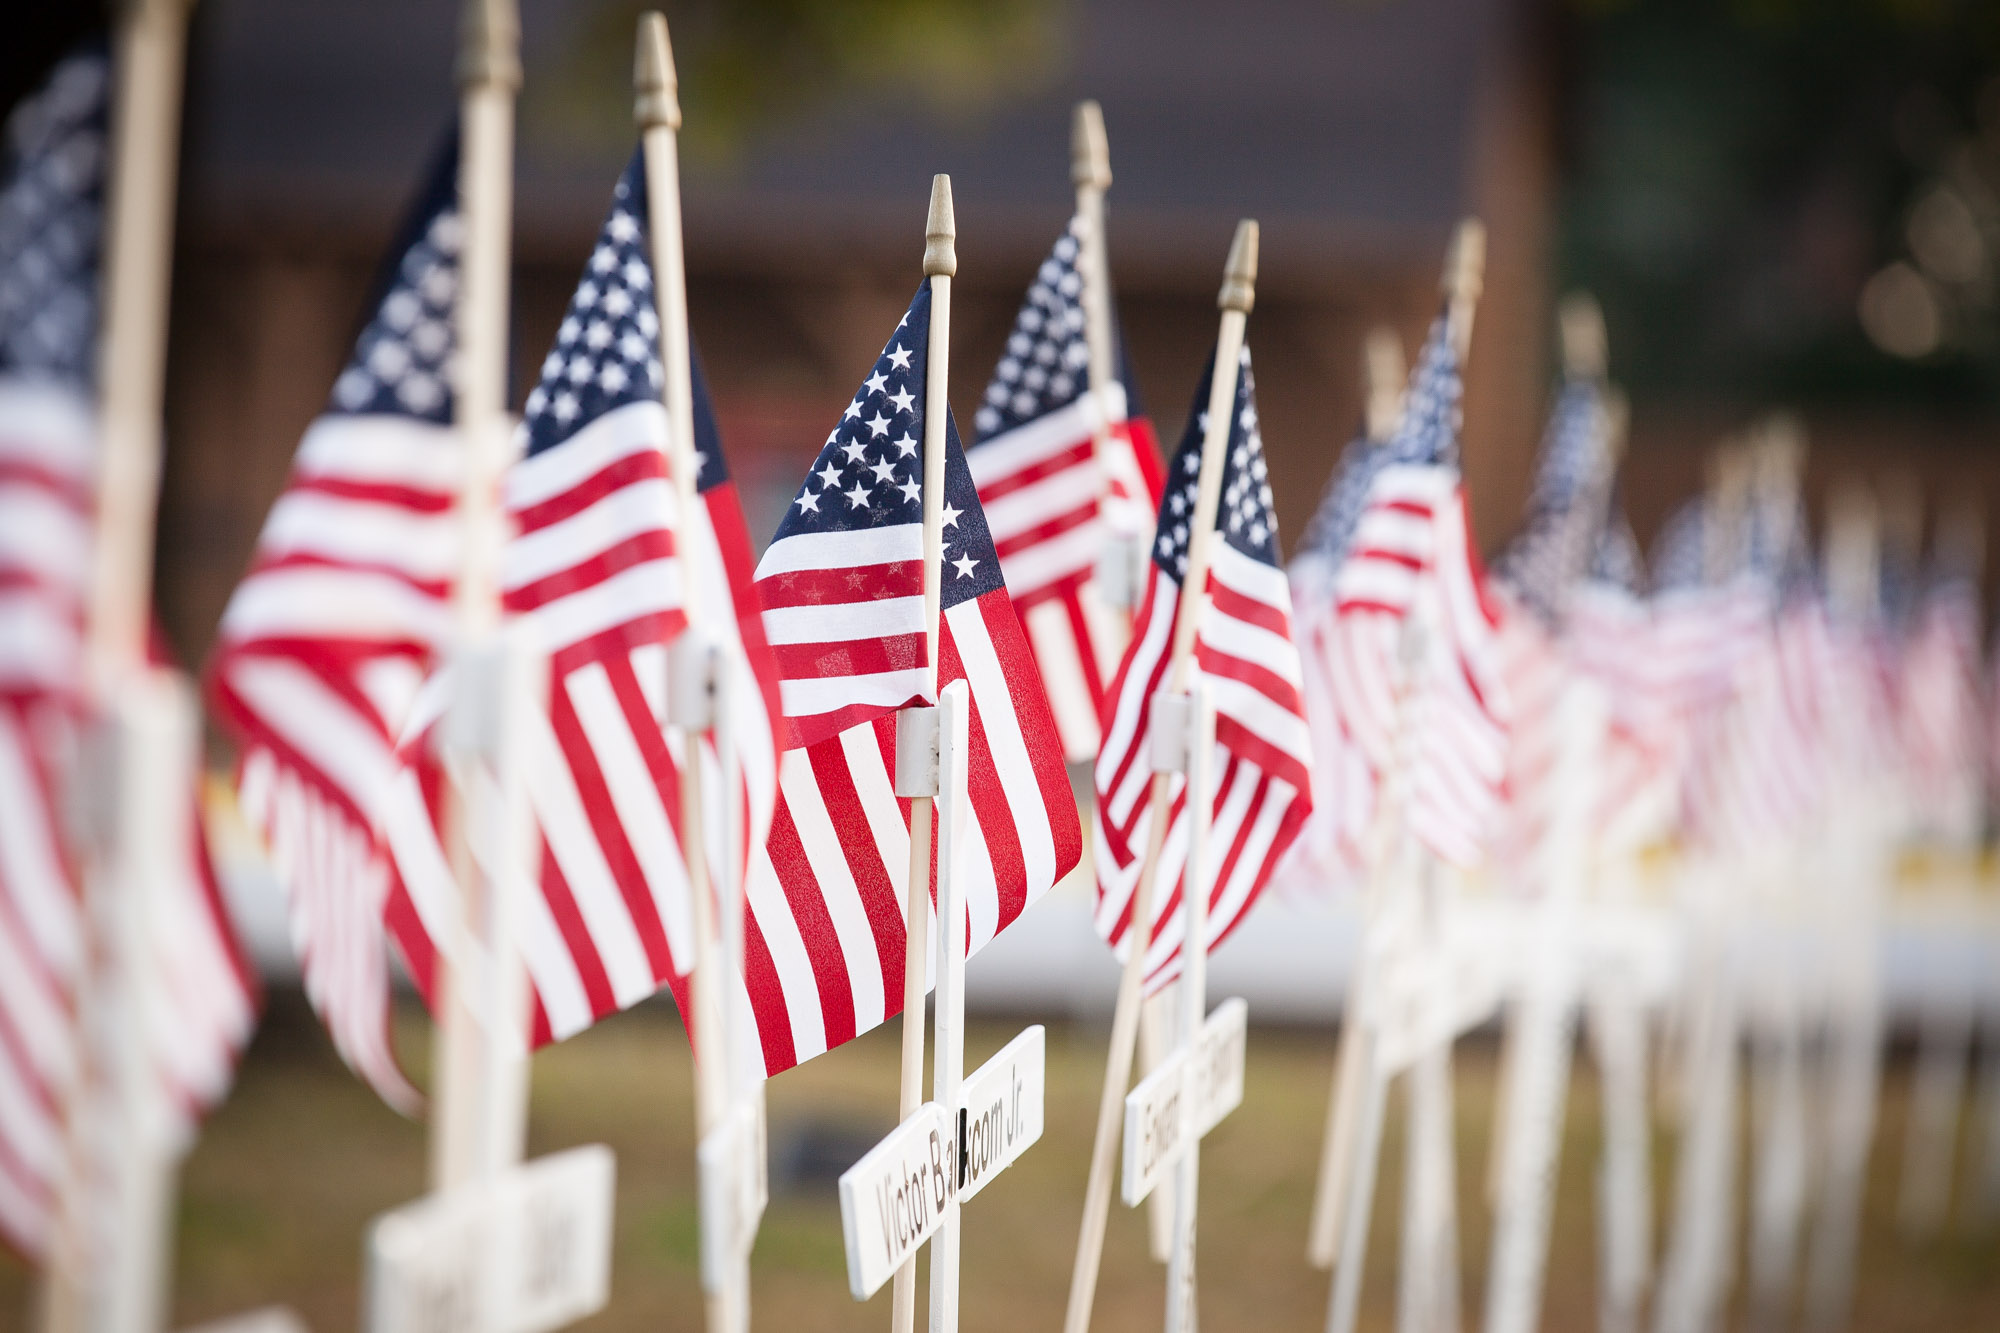 The local chapter American Legion helps our citizens and visitors honor our fallen Early County servicemen and servicewomen on Memorial Day and Veterans Day with a magnificent display of flags and crosses marked with their names every year.